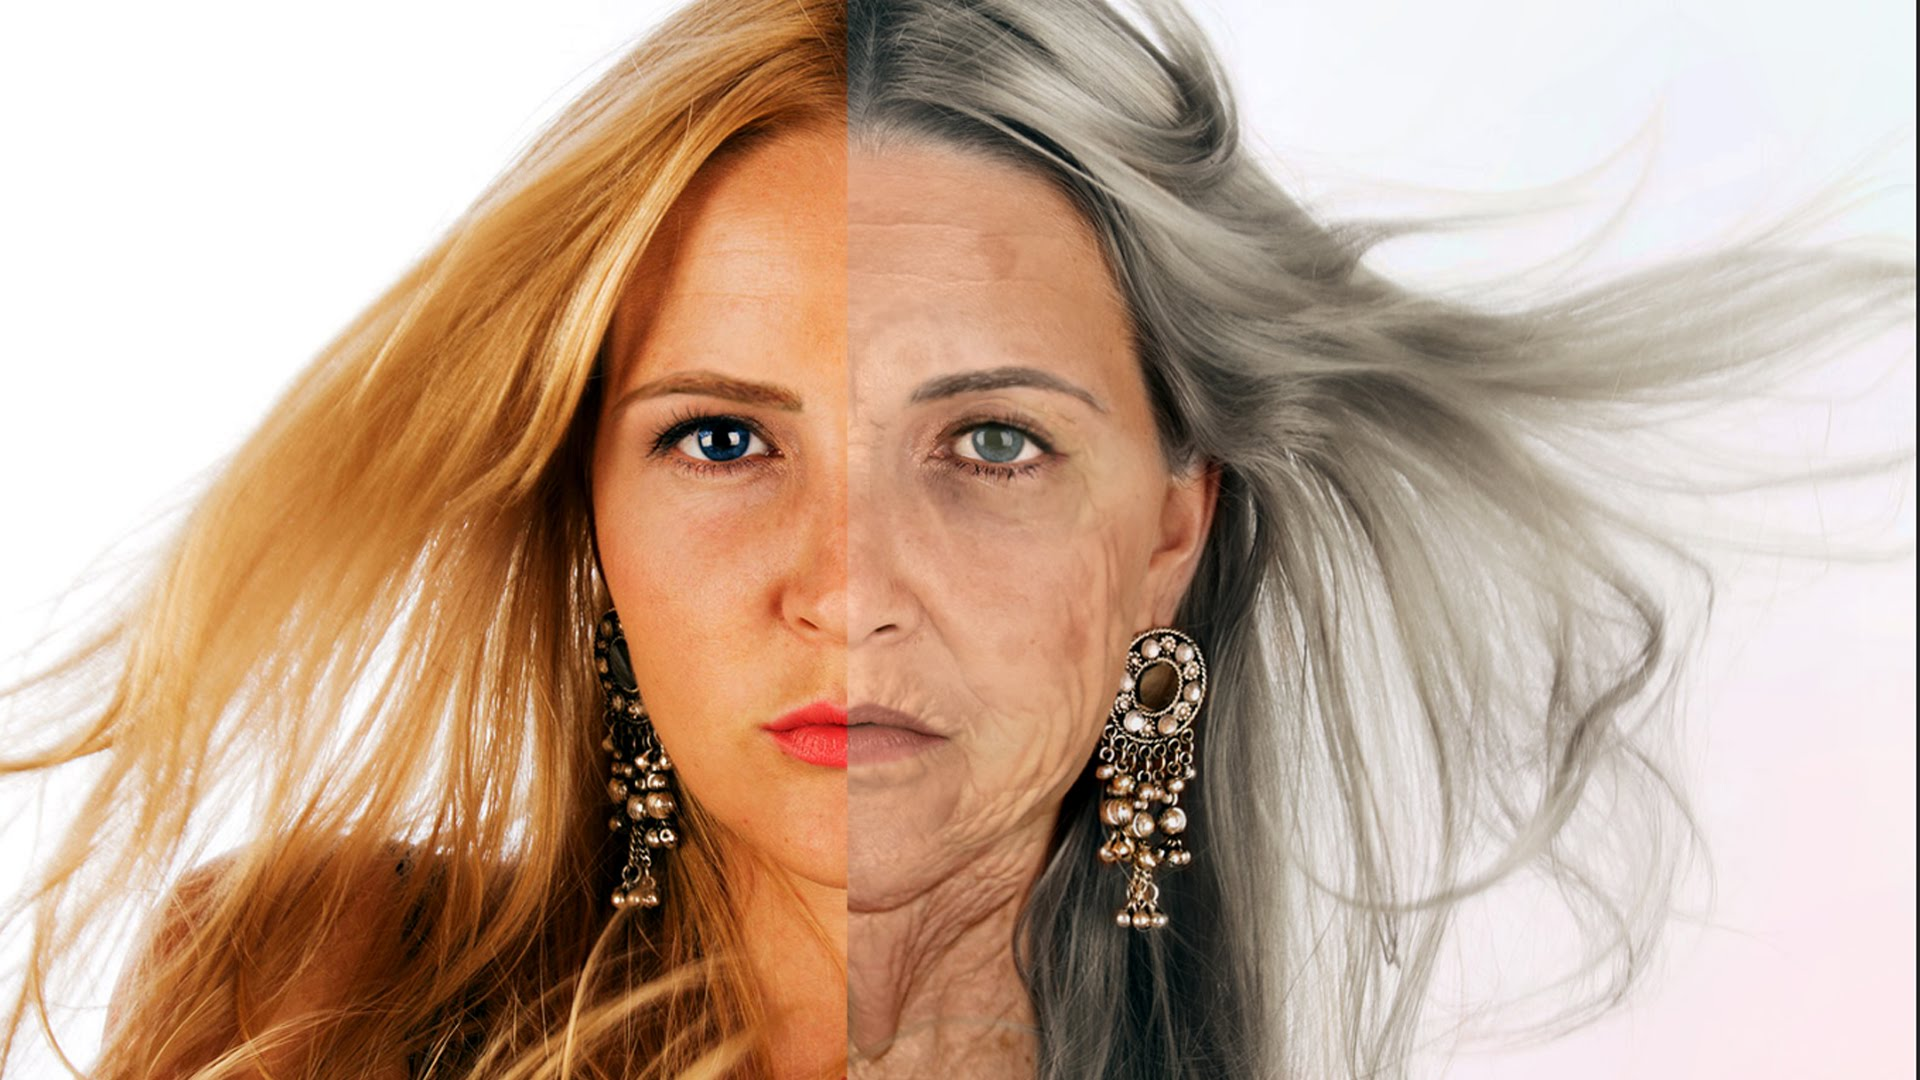 YOUNG woman TRANSFORMED into a very OLD lady - YouTube